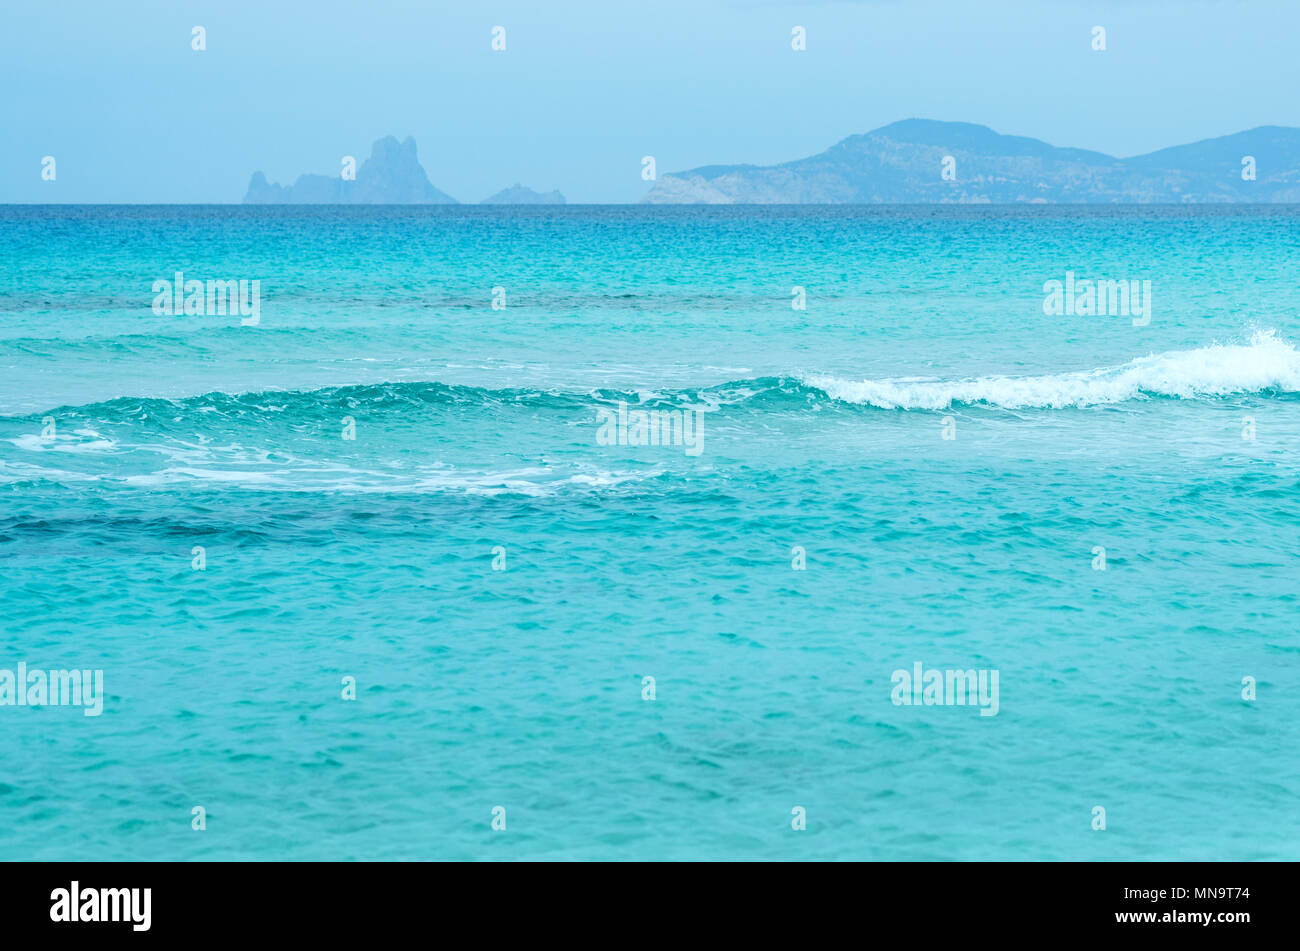 Turquoise water. Illetes beach in Formentera. Balearic Islands. Spain - Stock Image